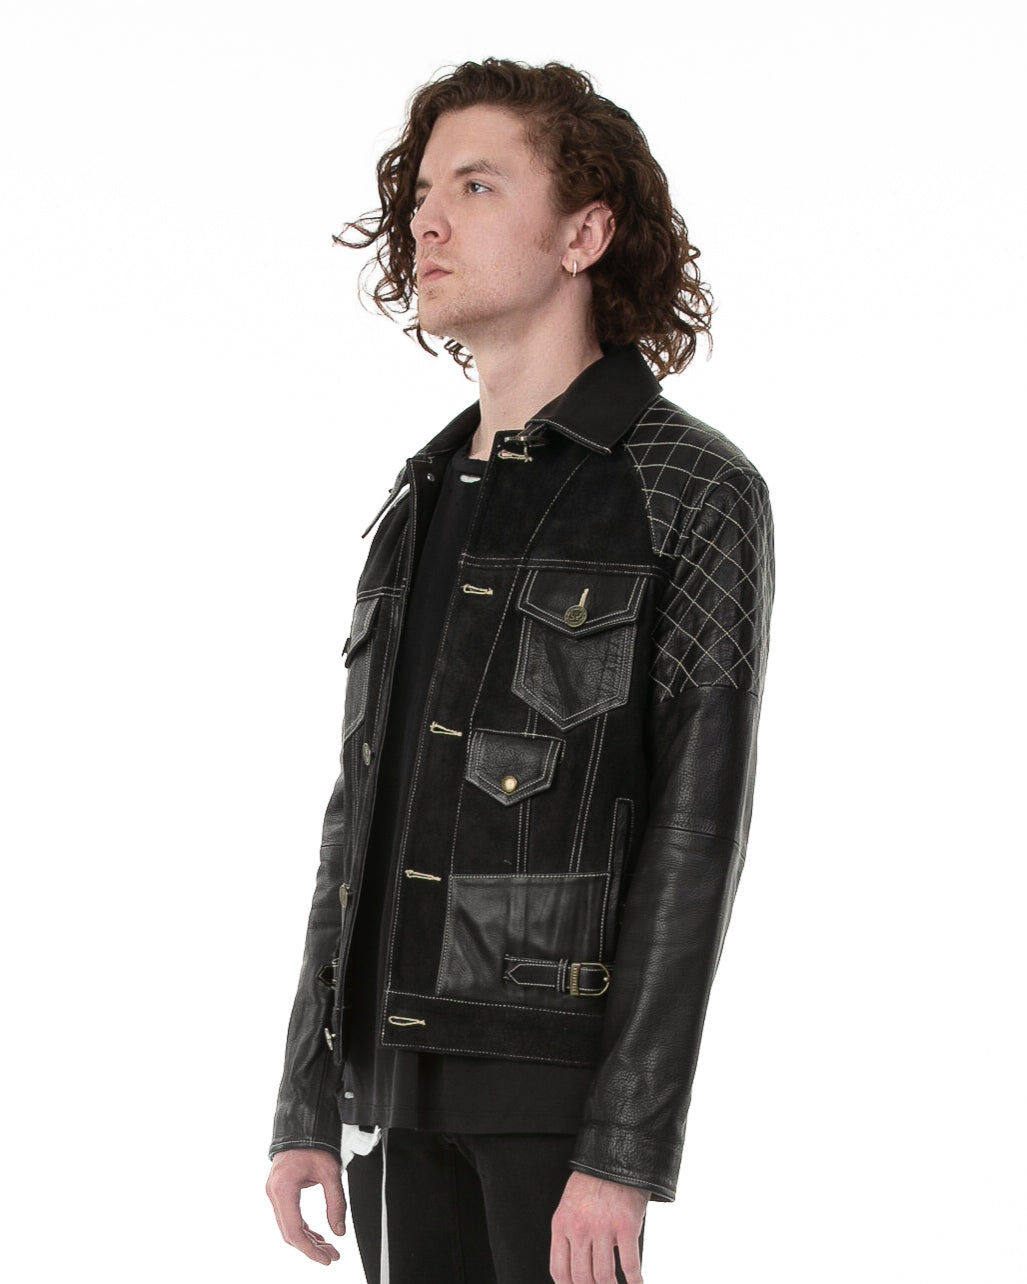 Side of male model wearing Emperor leather jacket